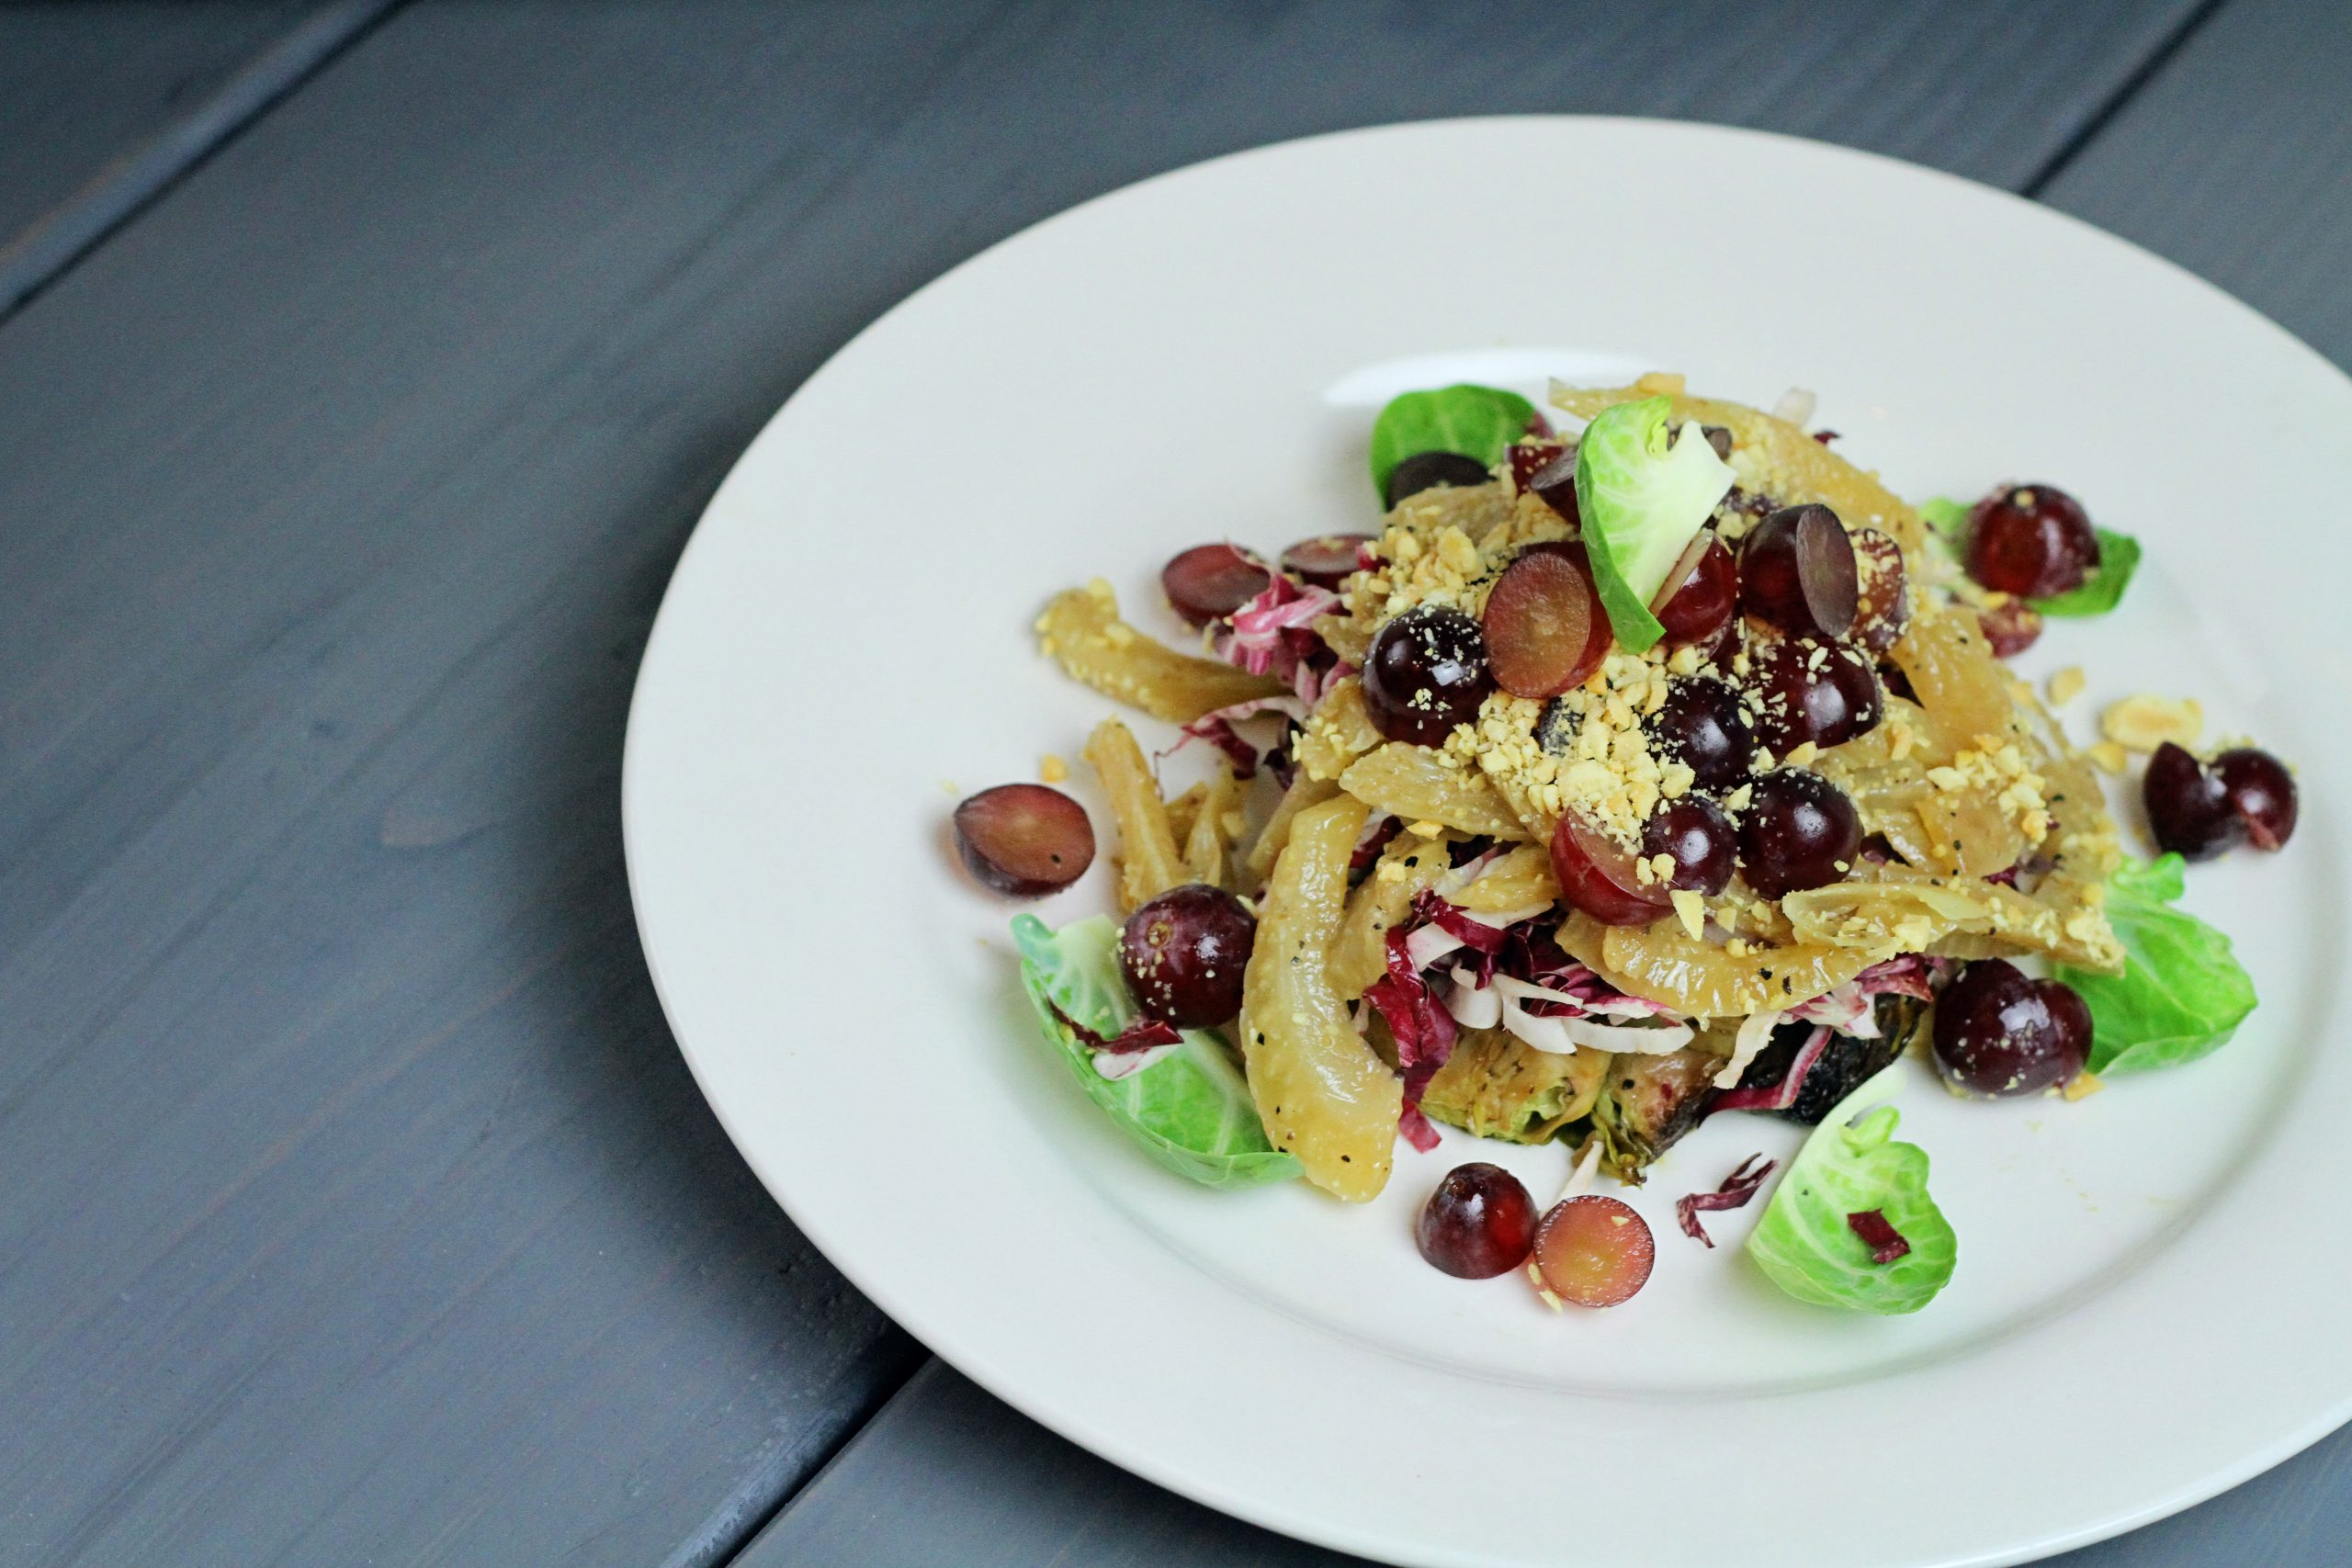 Roasted Brussel Sprout Salad with Caramelized Fennel, Marcona Almonds, and fresh Red Grapes – Vegan Paleo Foods for Spring by Chef Jesa Henneberry